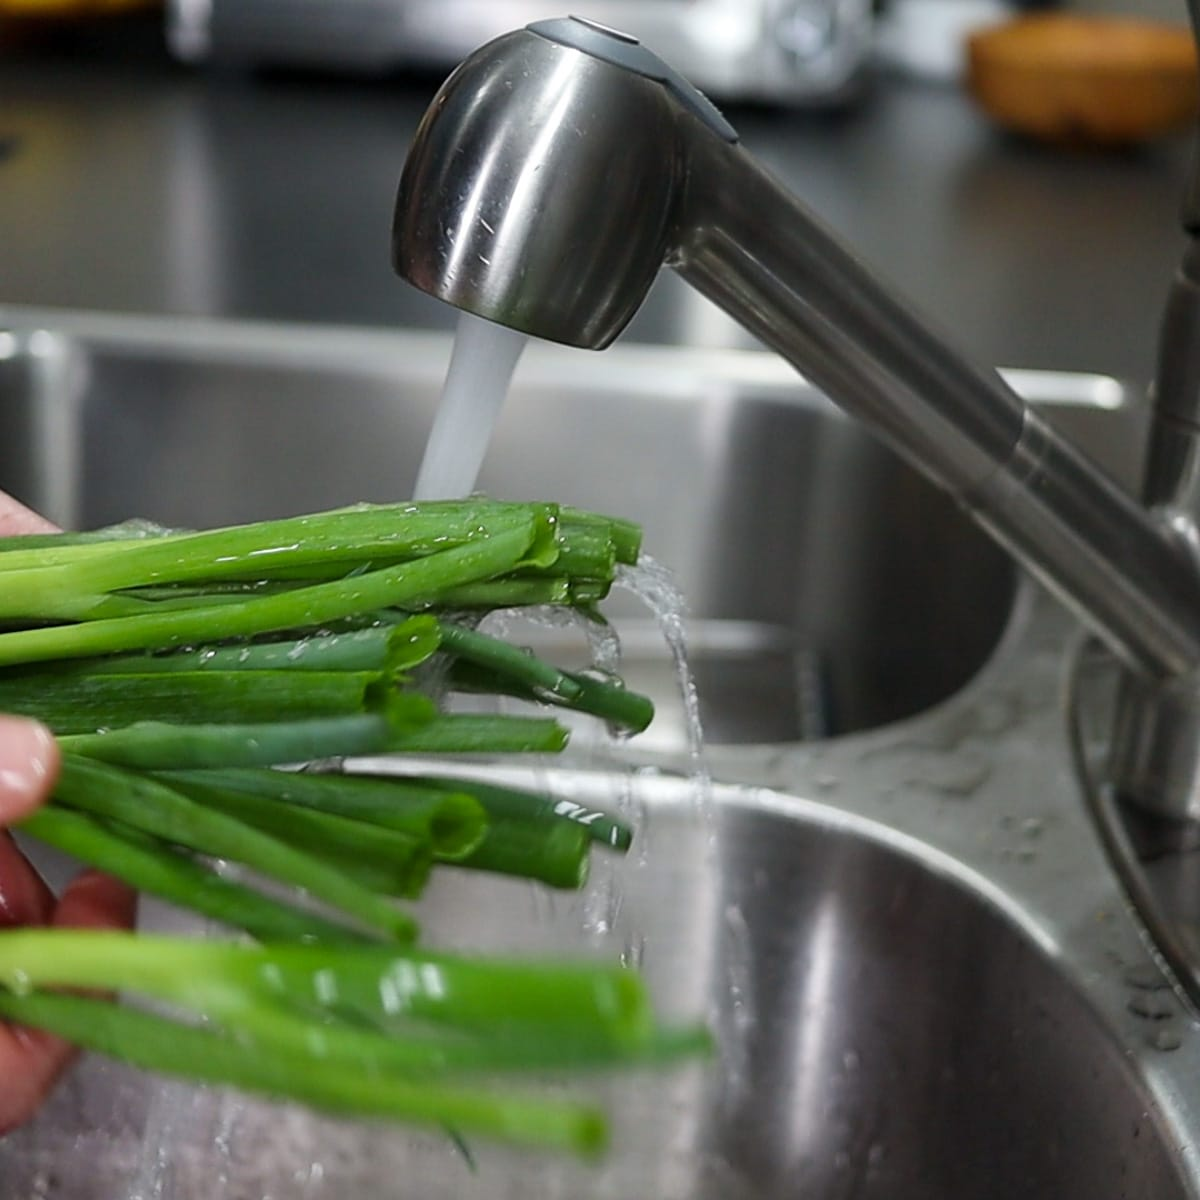 washing under a sink with cold water